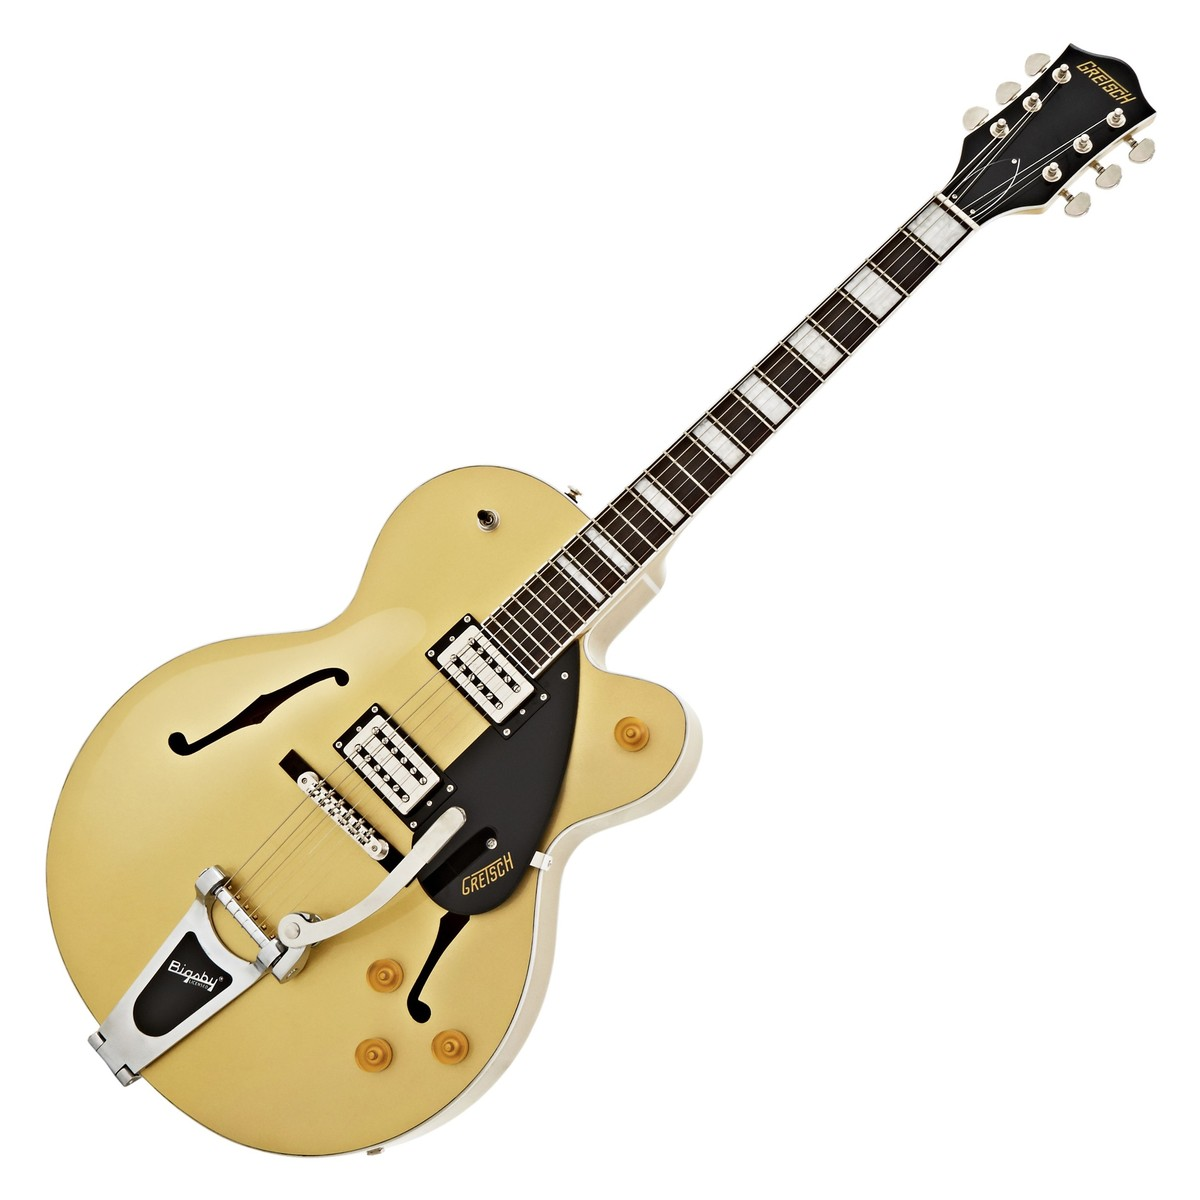 gretsch g2420t streamliner hollow body guitar with bigsby golddust at. Black Bedroom Furniture Sets. Home Design Ideas